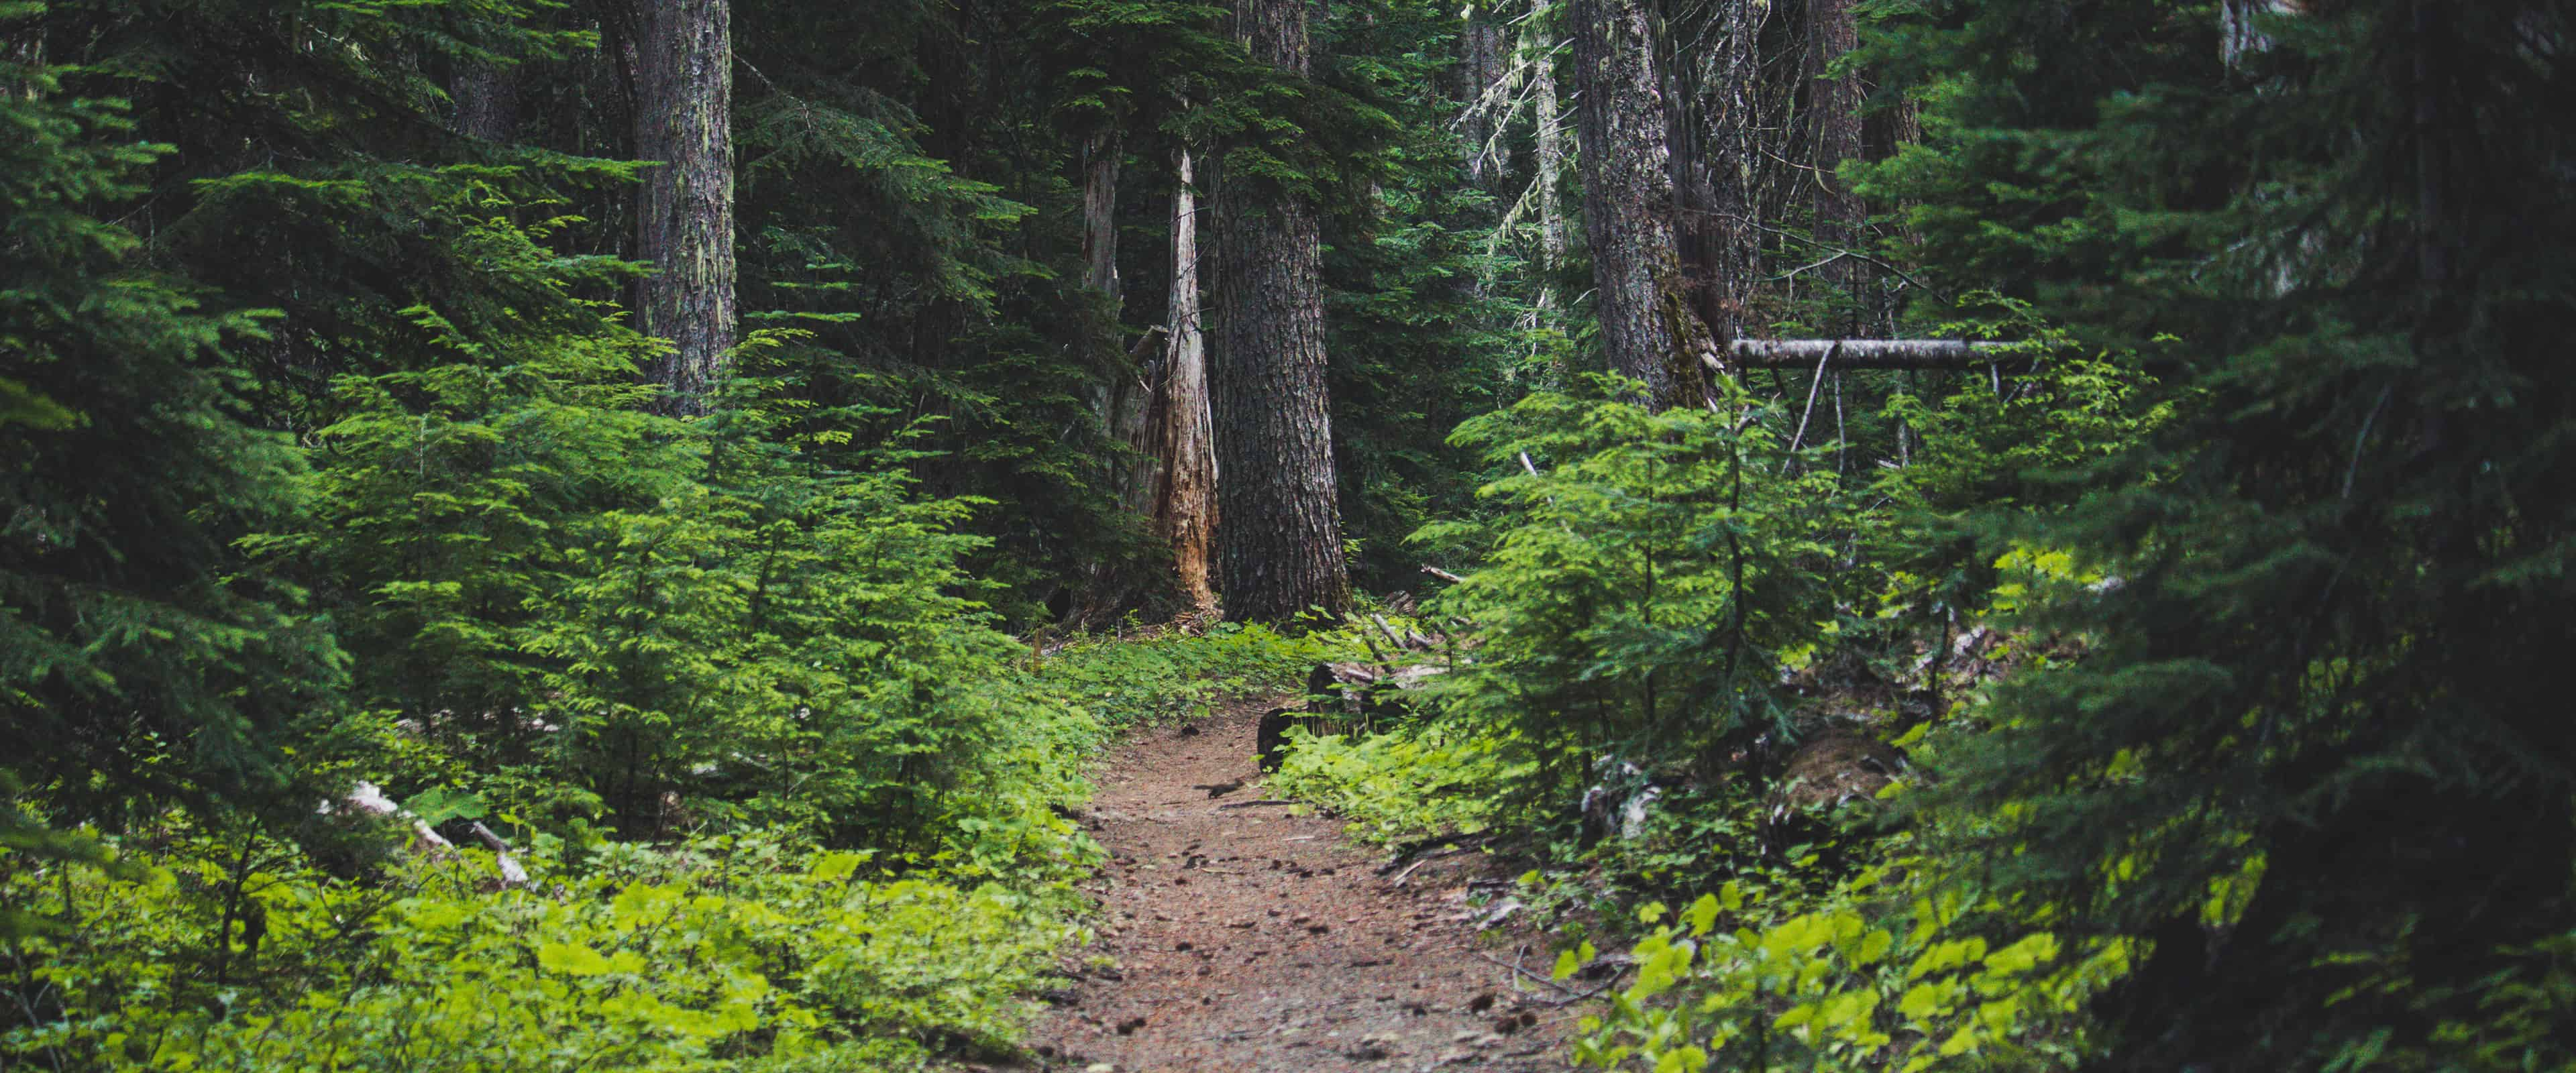 Single track trail through evergreen forest.